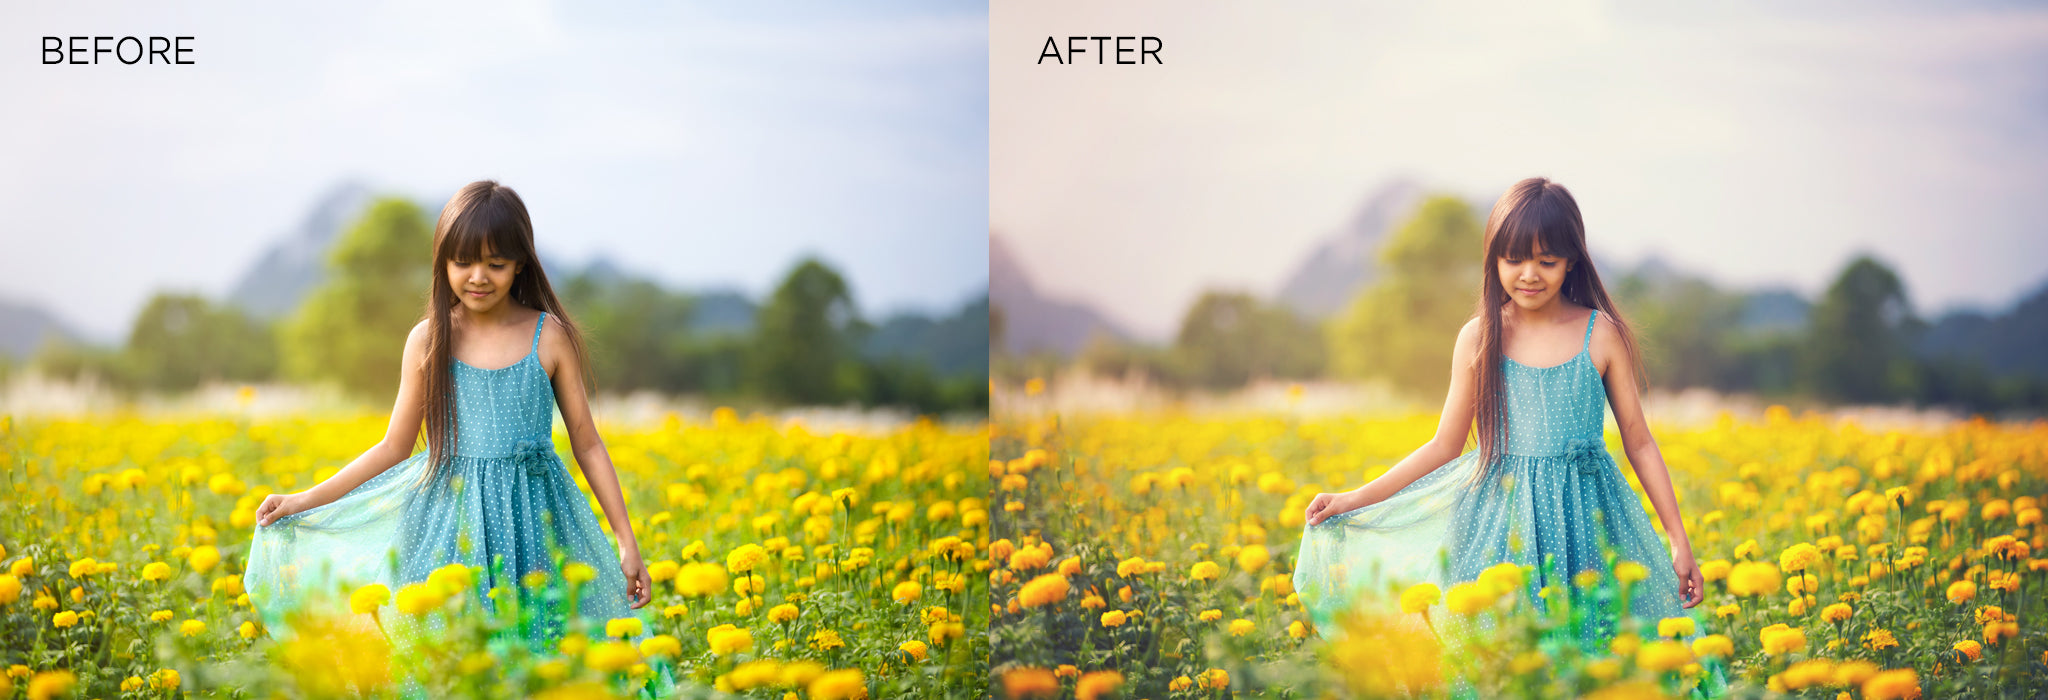 Top 40 Photo Effect Tutorials with Photoshop